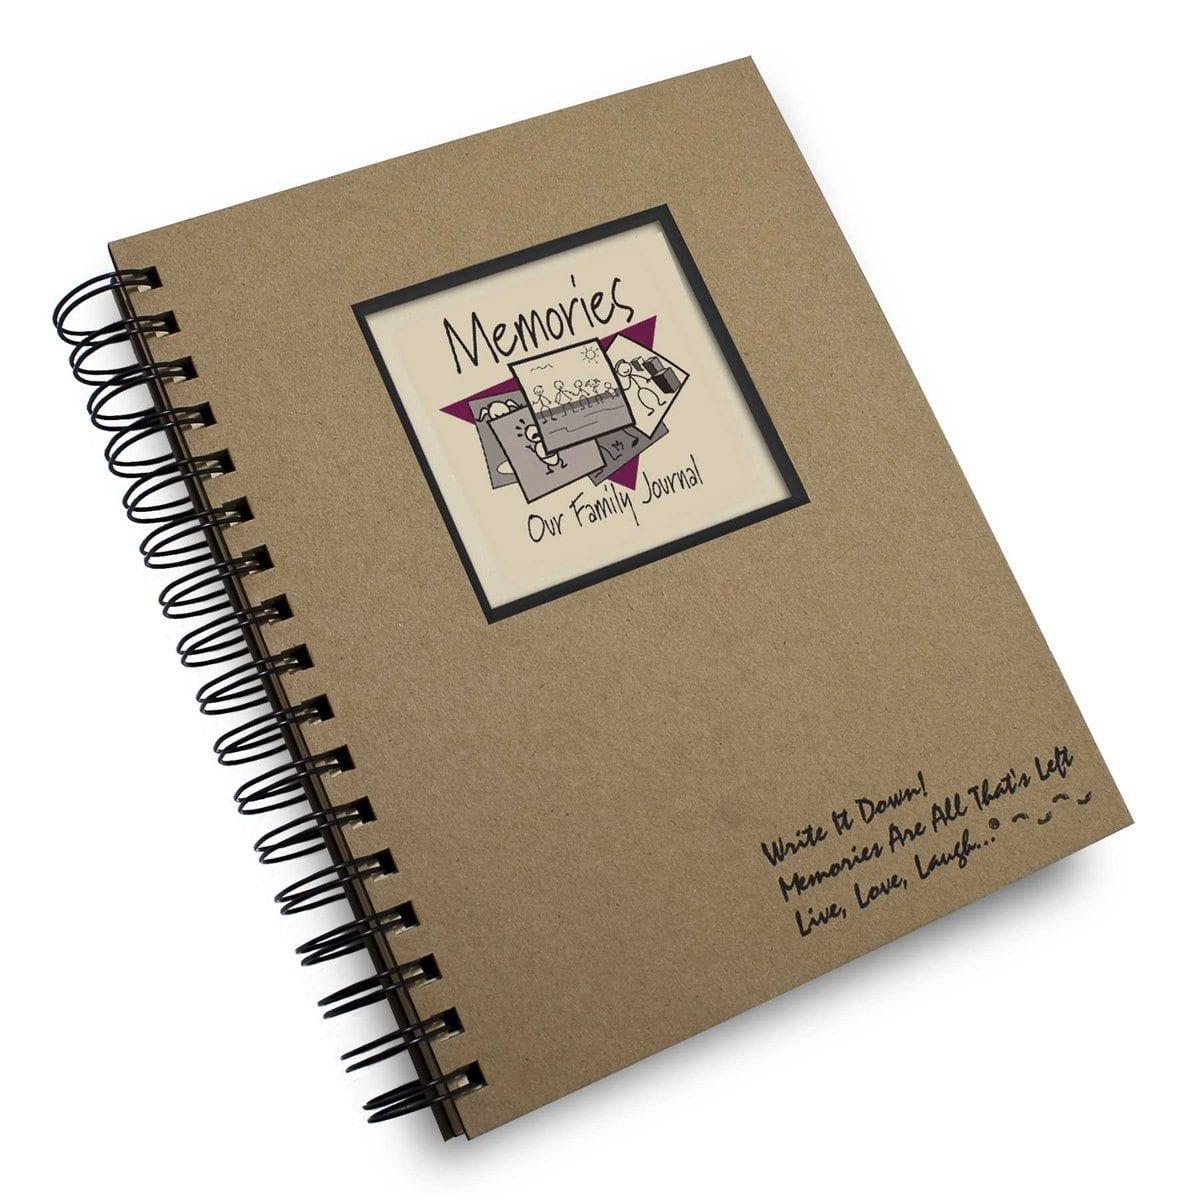 Journals Unlimited Memories Full Size Journal - huggle